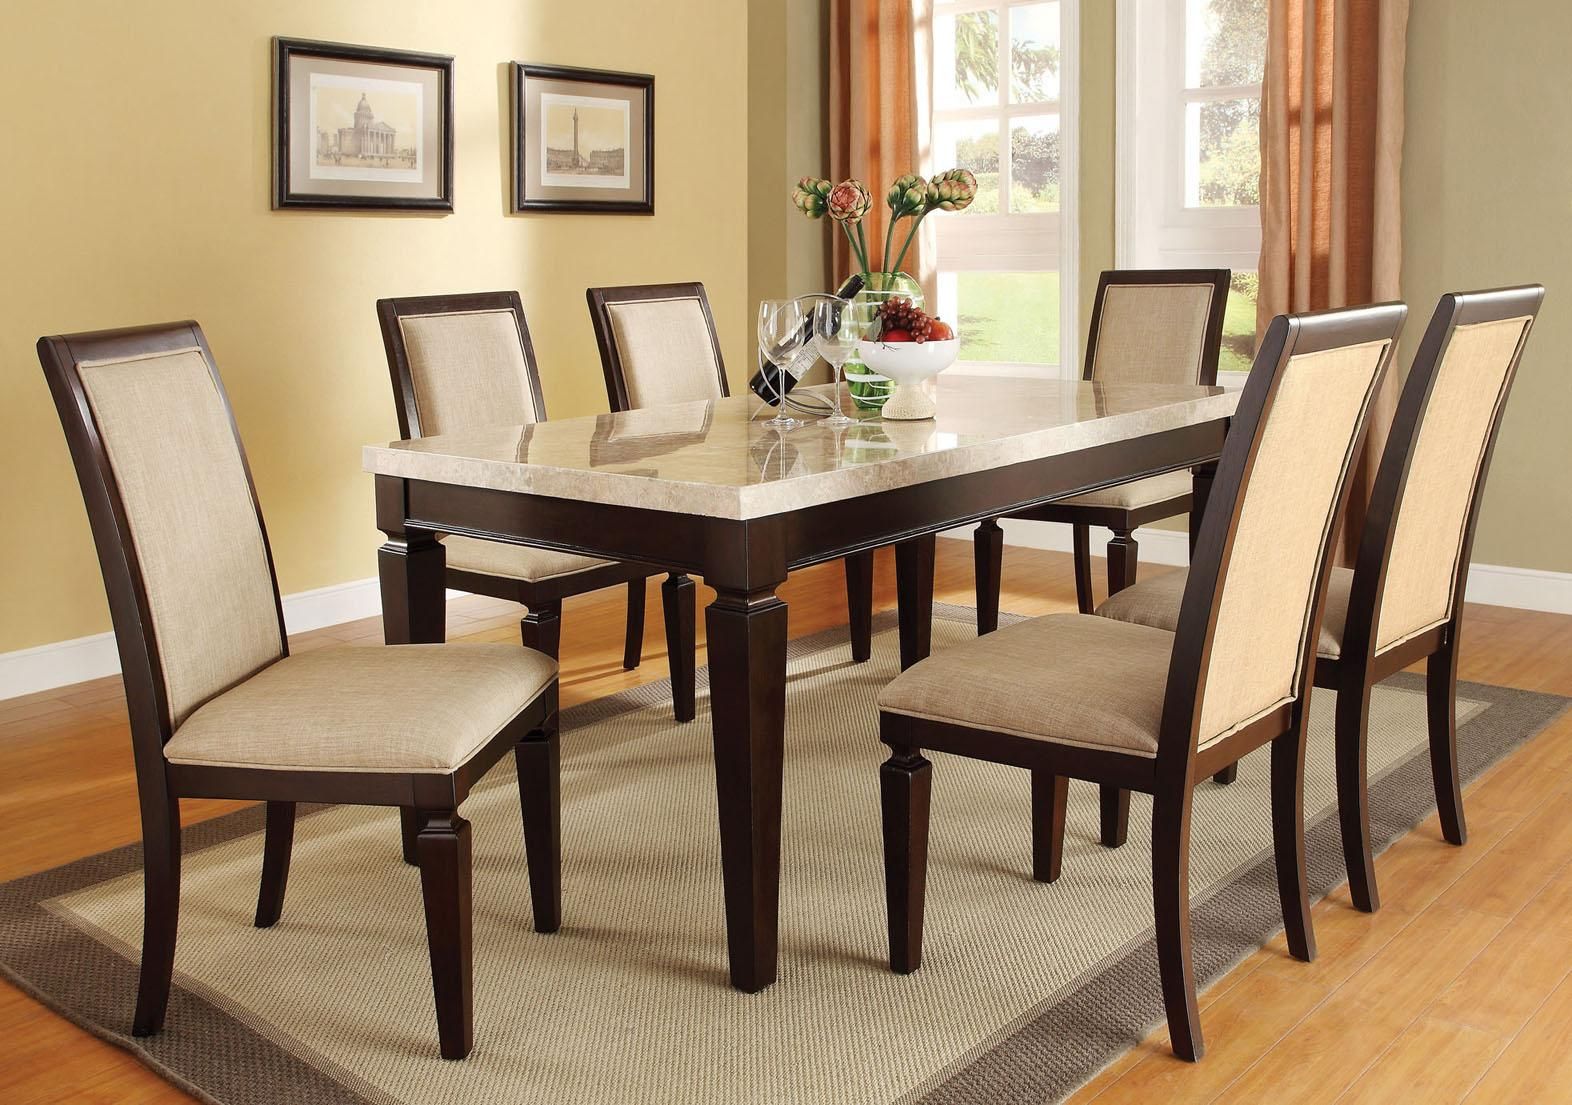 Acme agatha 7pc white marble top rectangular dining room set in espresso by dining rooms outlet